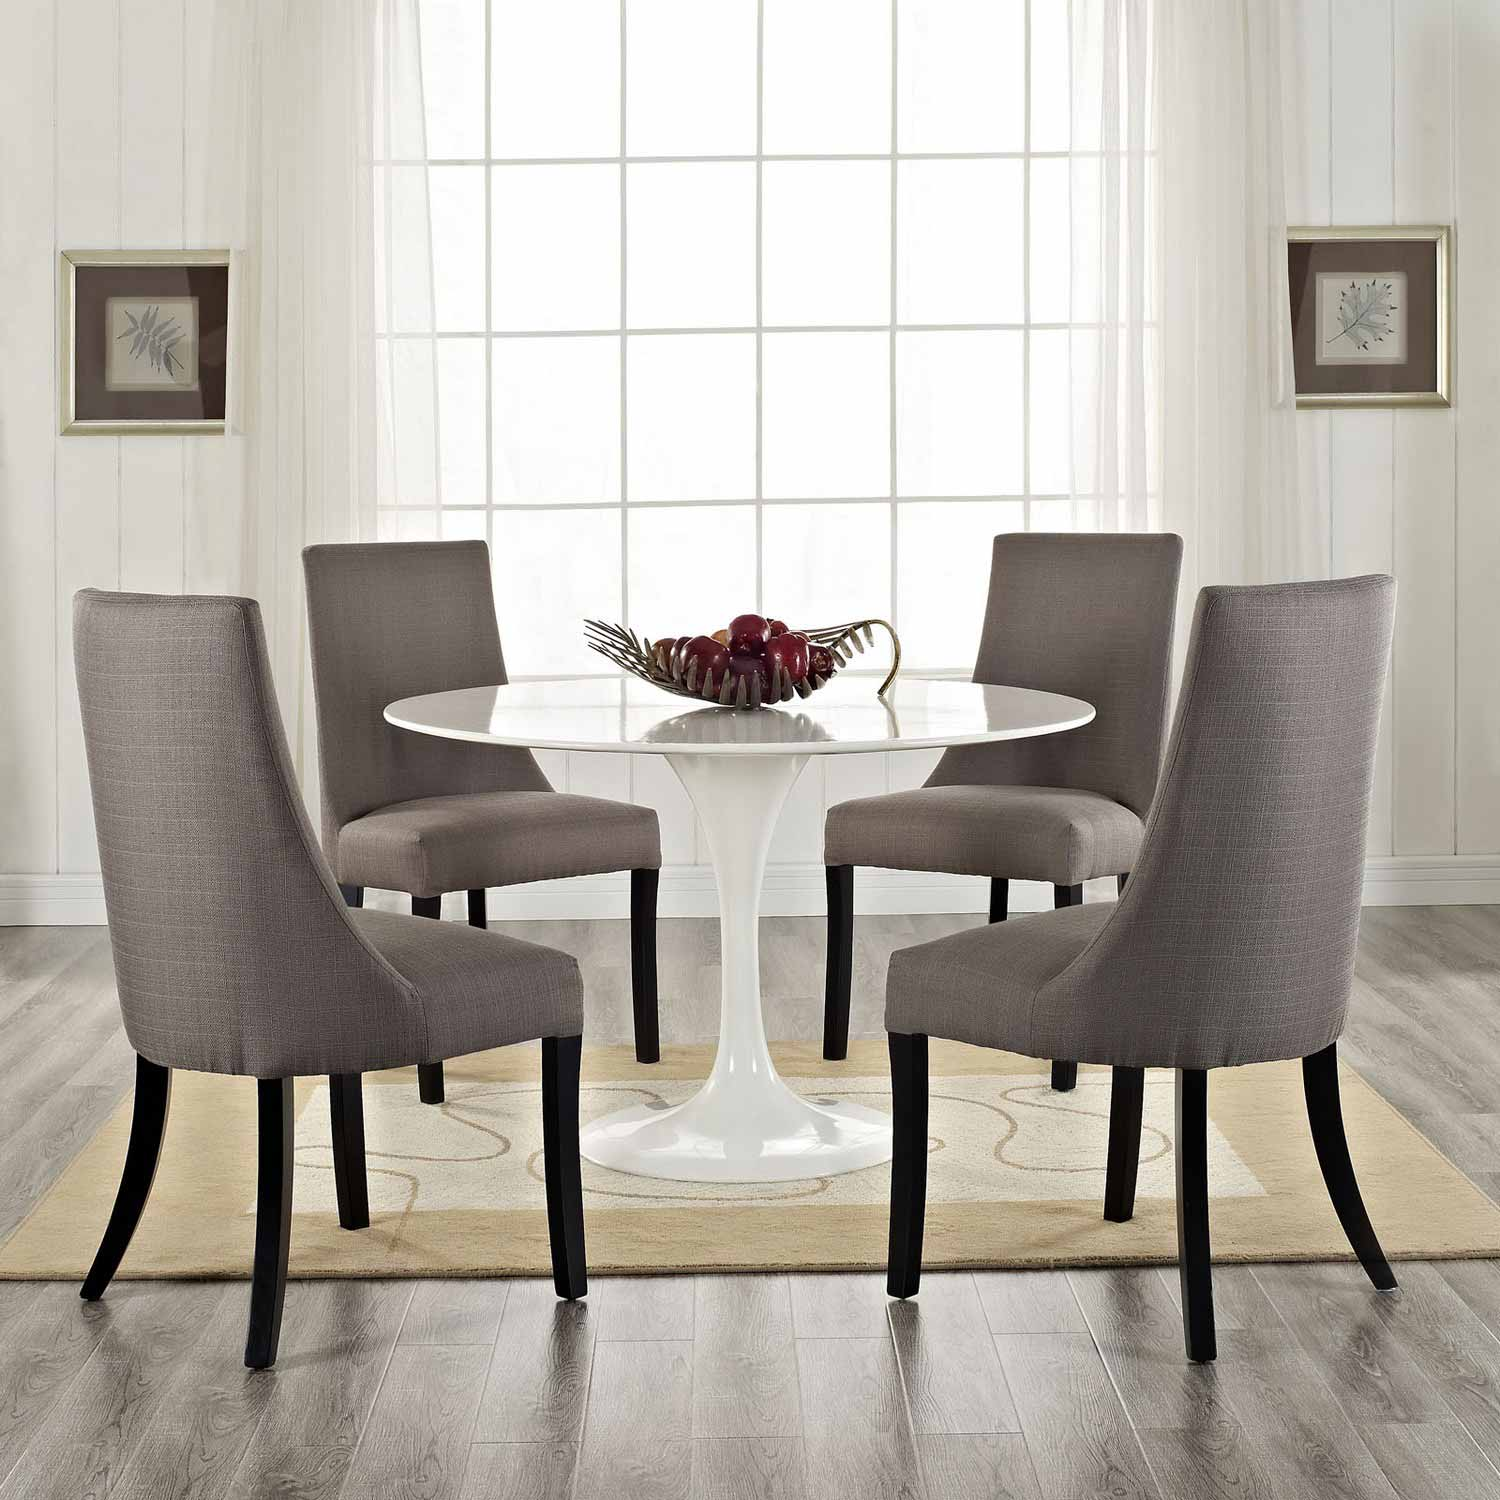 Modway Reverie Dining Side Chair Set of 4 - Gray